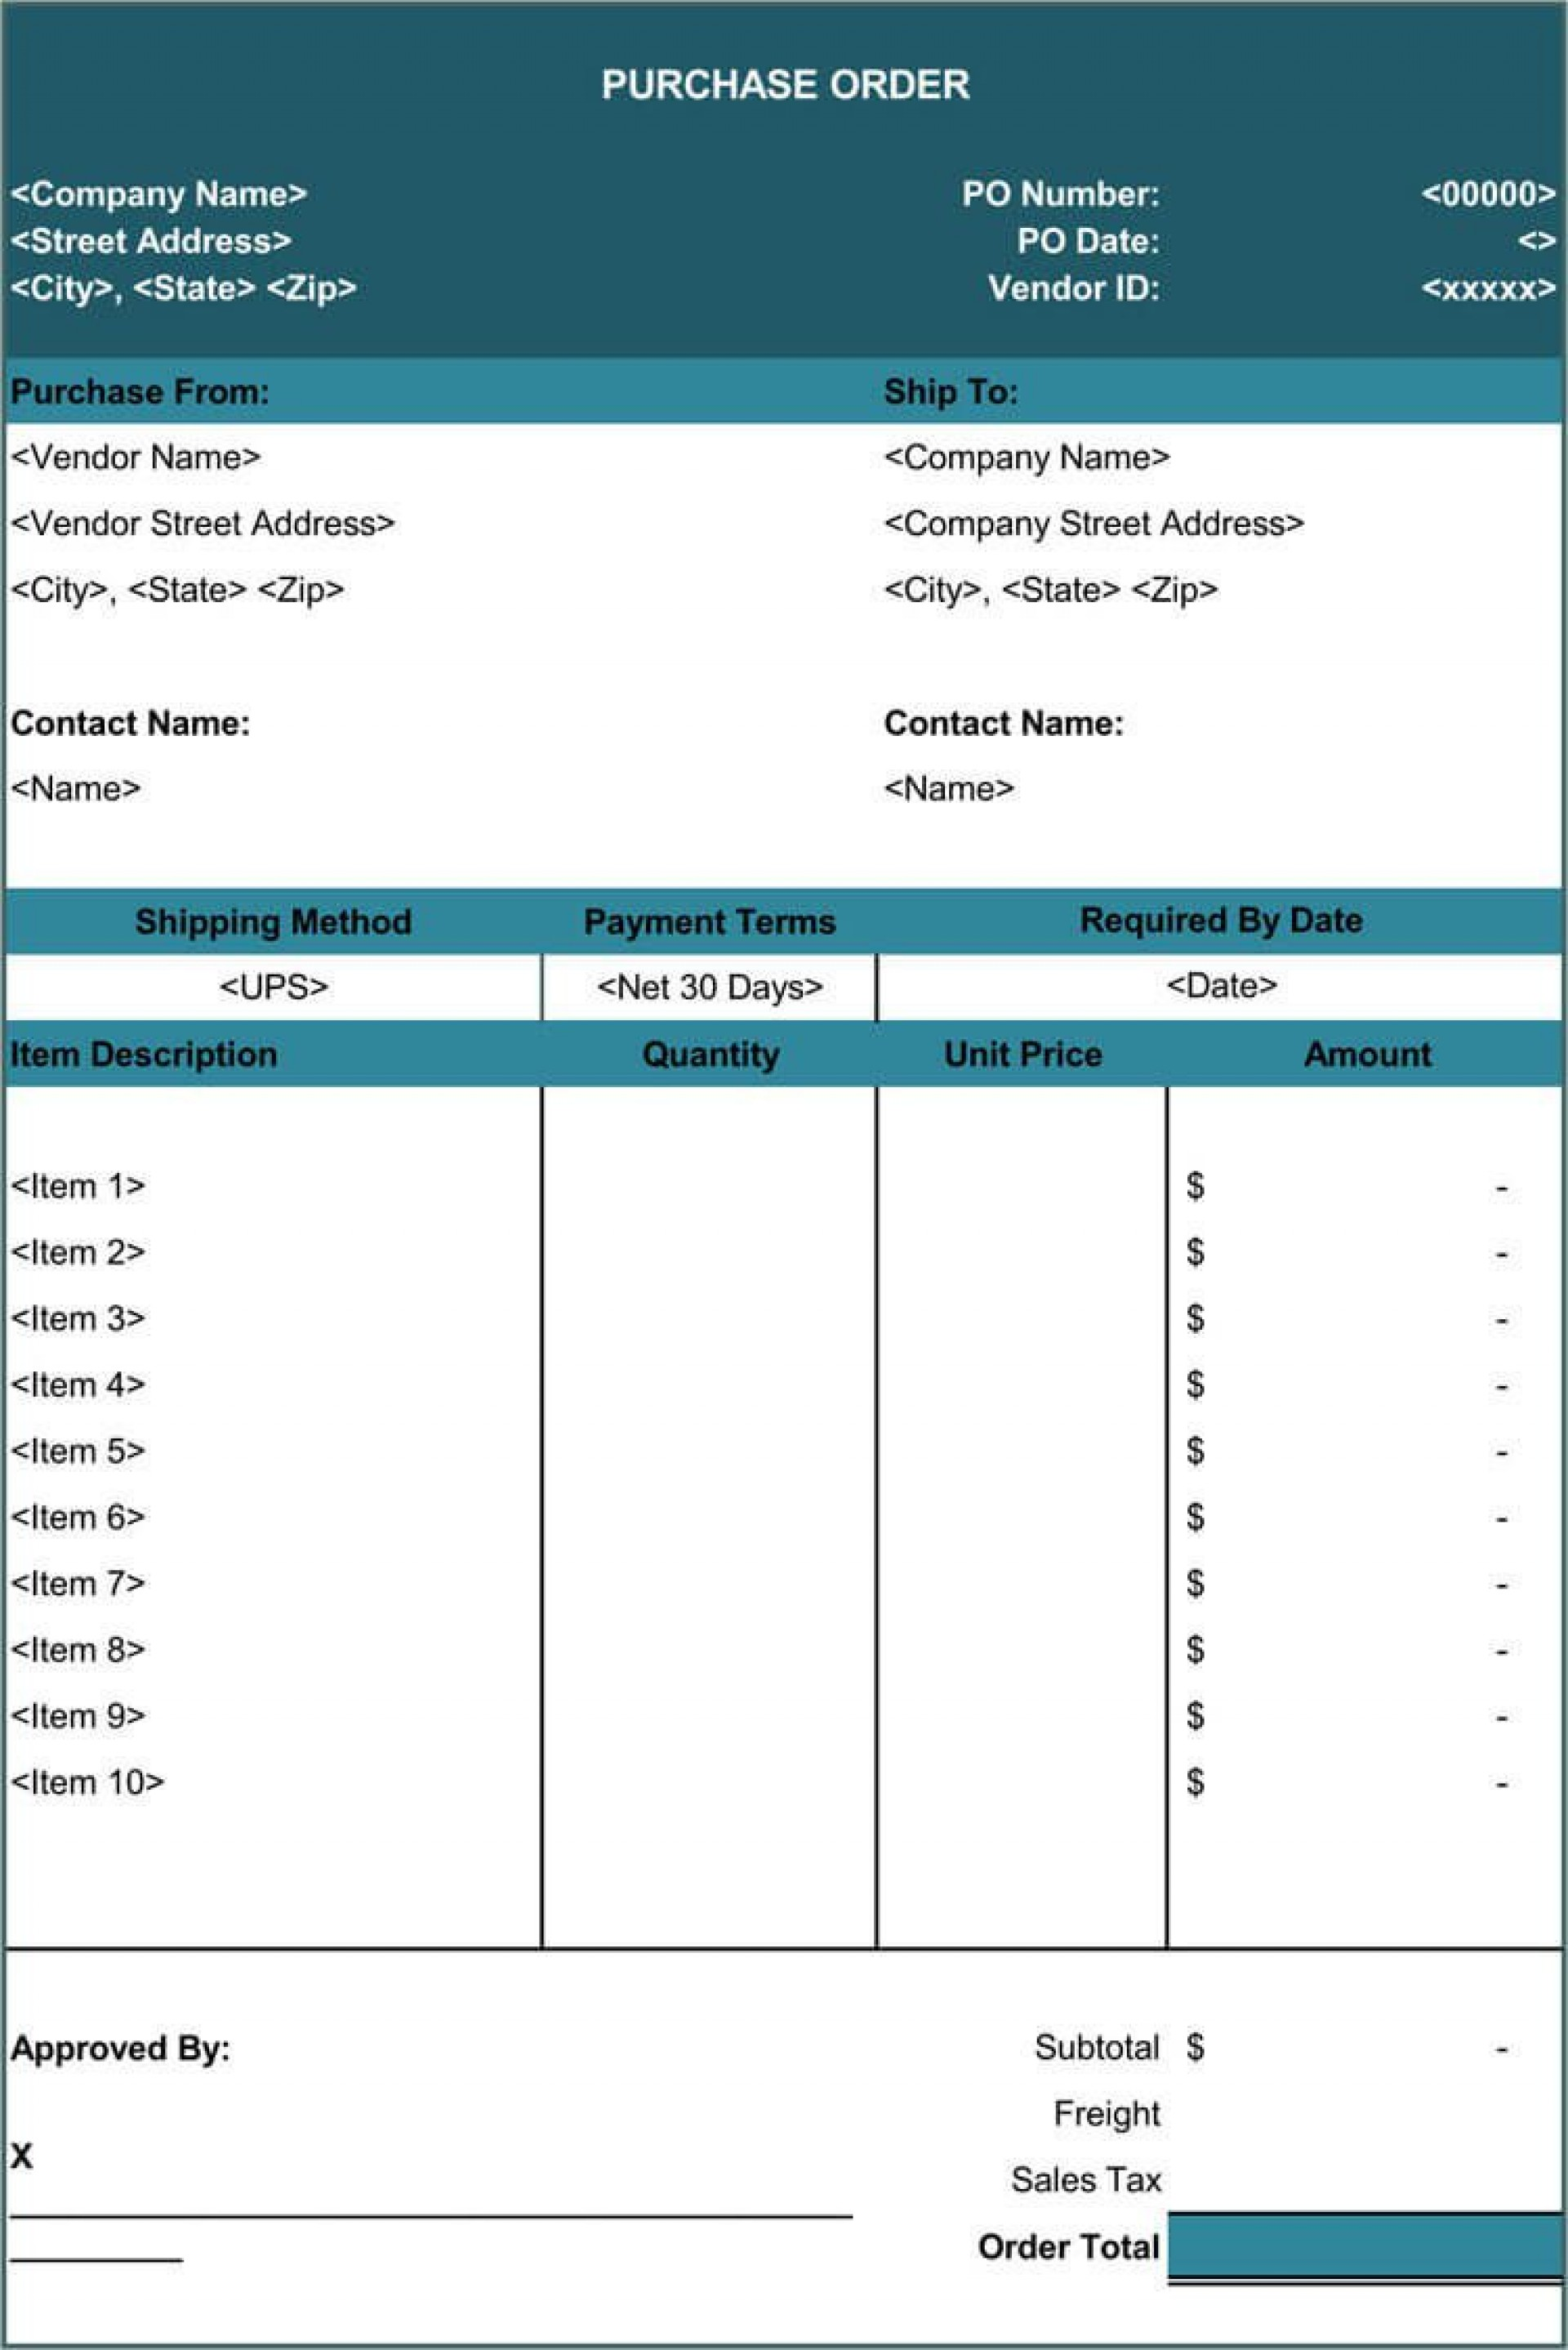 009 Top Purchase Order Template Free Image  Log M Acces Blanket1920